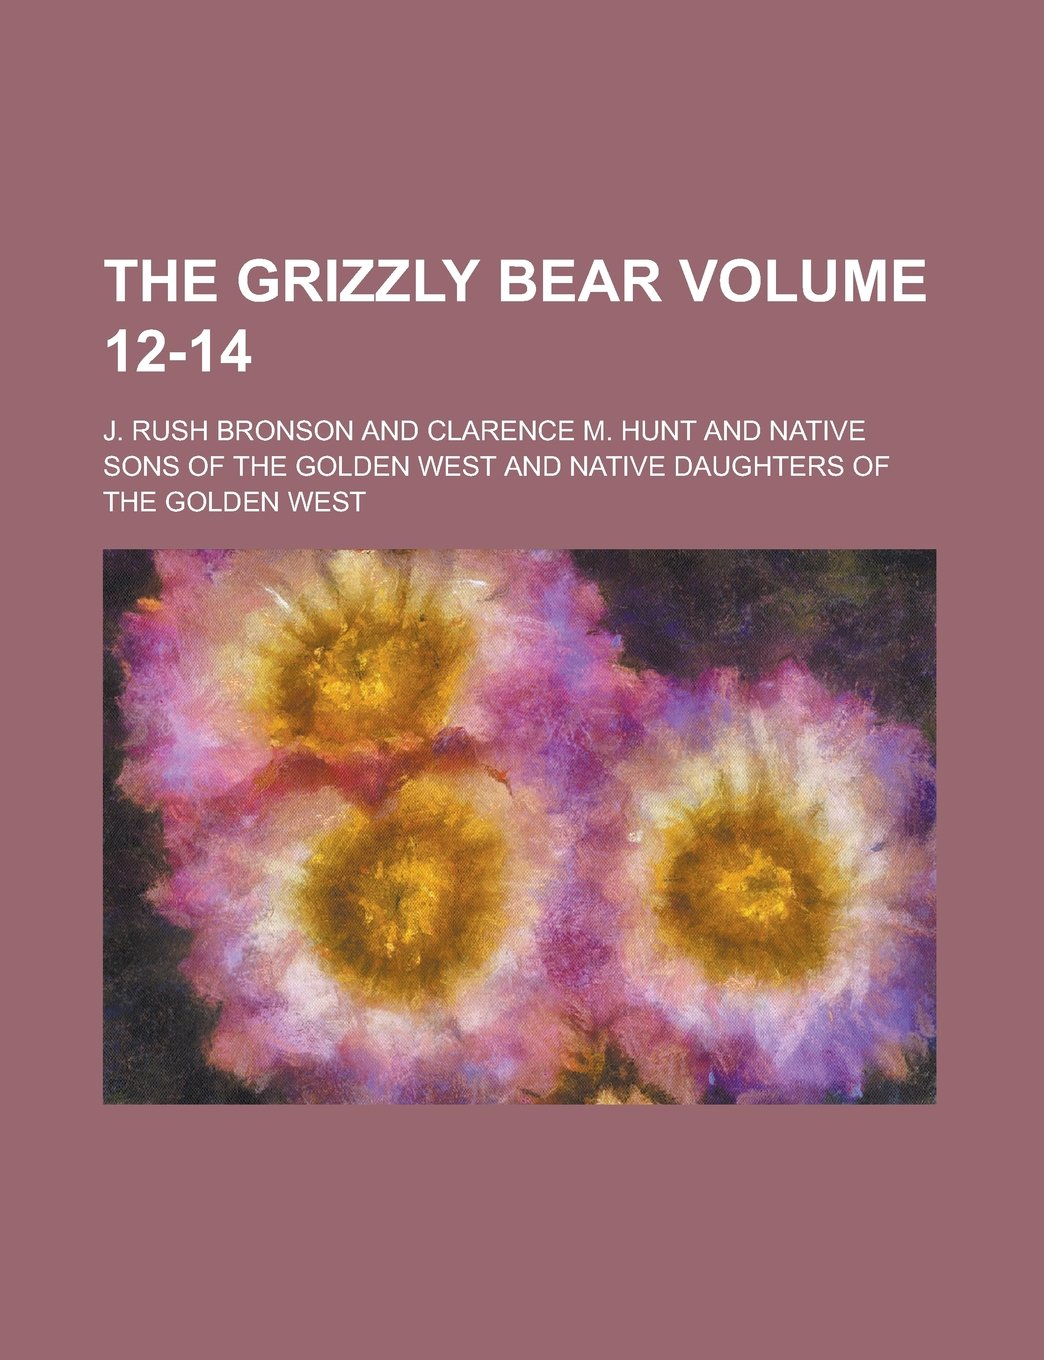 The Grizzly Bear Volume 12-14 PDF